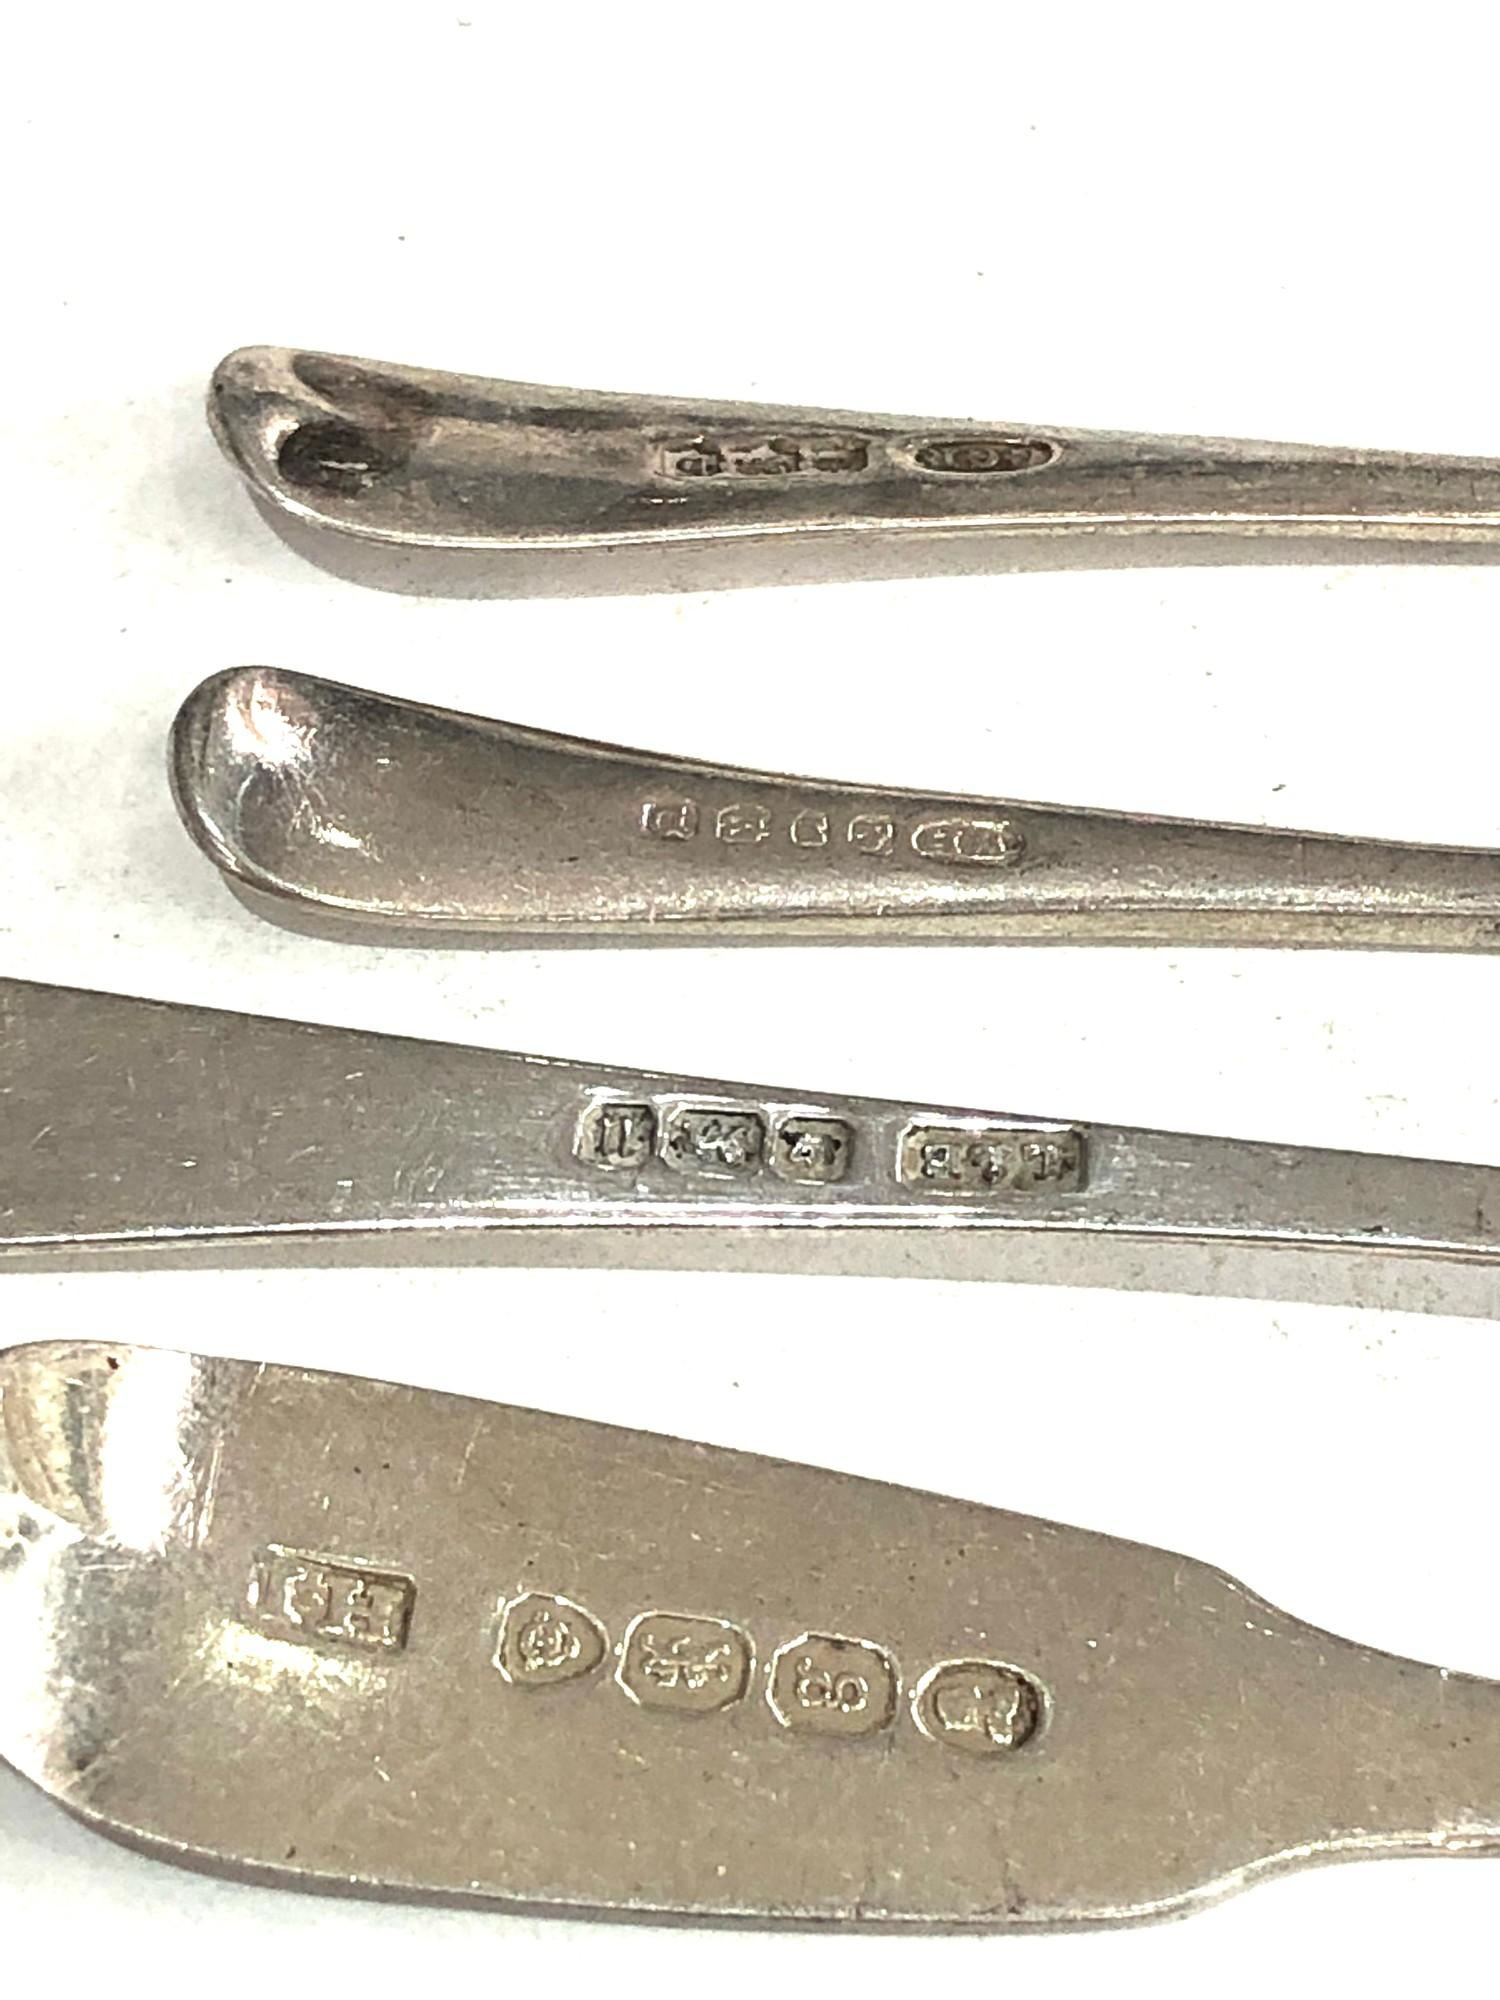 Selection of 4 antique & vintage silver mustard spoons weight 41g - Image 3 of 3